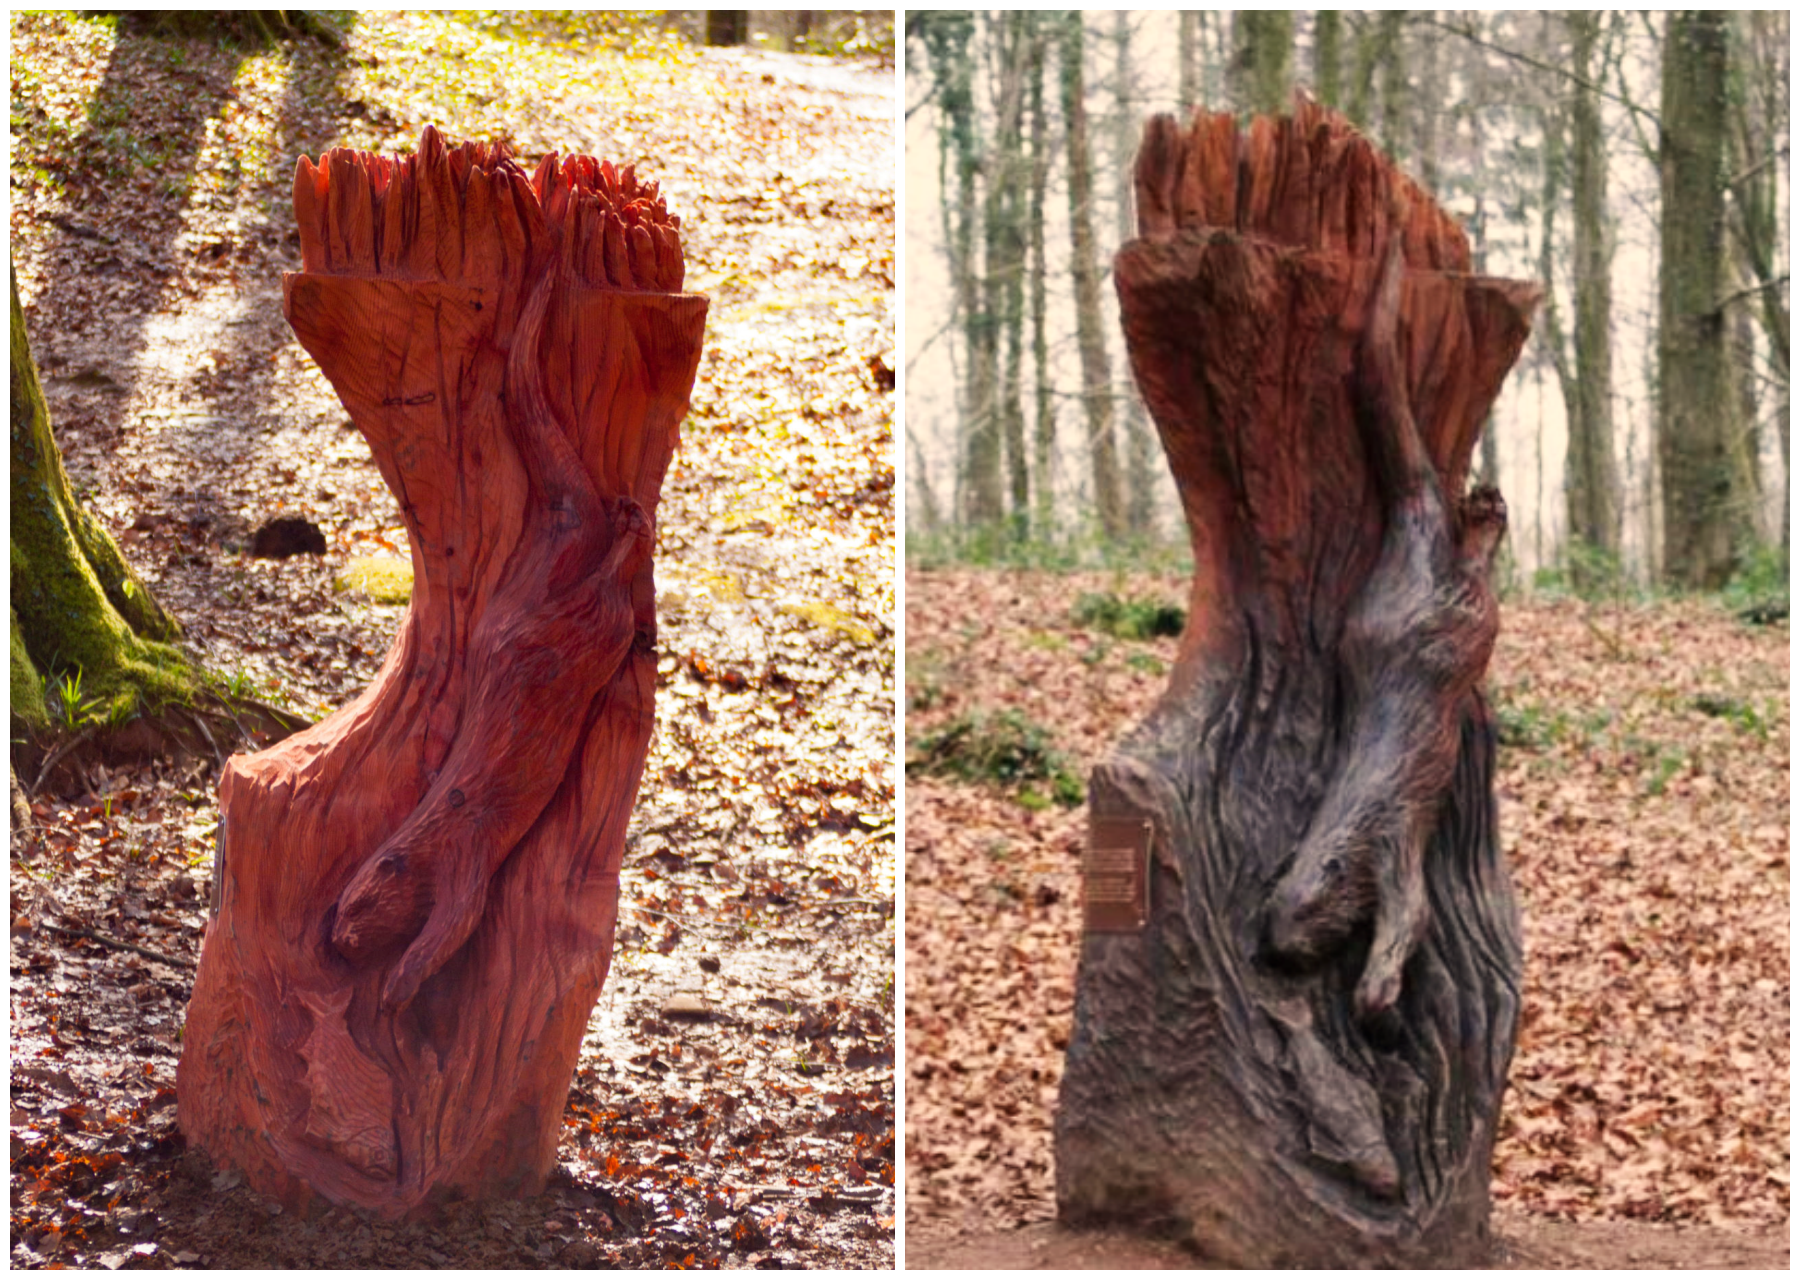 How long will my wood sculpture last? Photo shows a comparison of a redwood sculpture two years on. The sculpture is the brown otter in Fforest Fawr. In the first the wood is a warm, vivid red colour. After two years it is fully in tact, but the shadows appear deeper and it is turning a deep brown with cold tones.